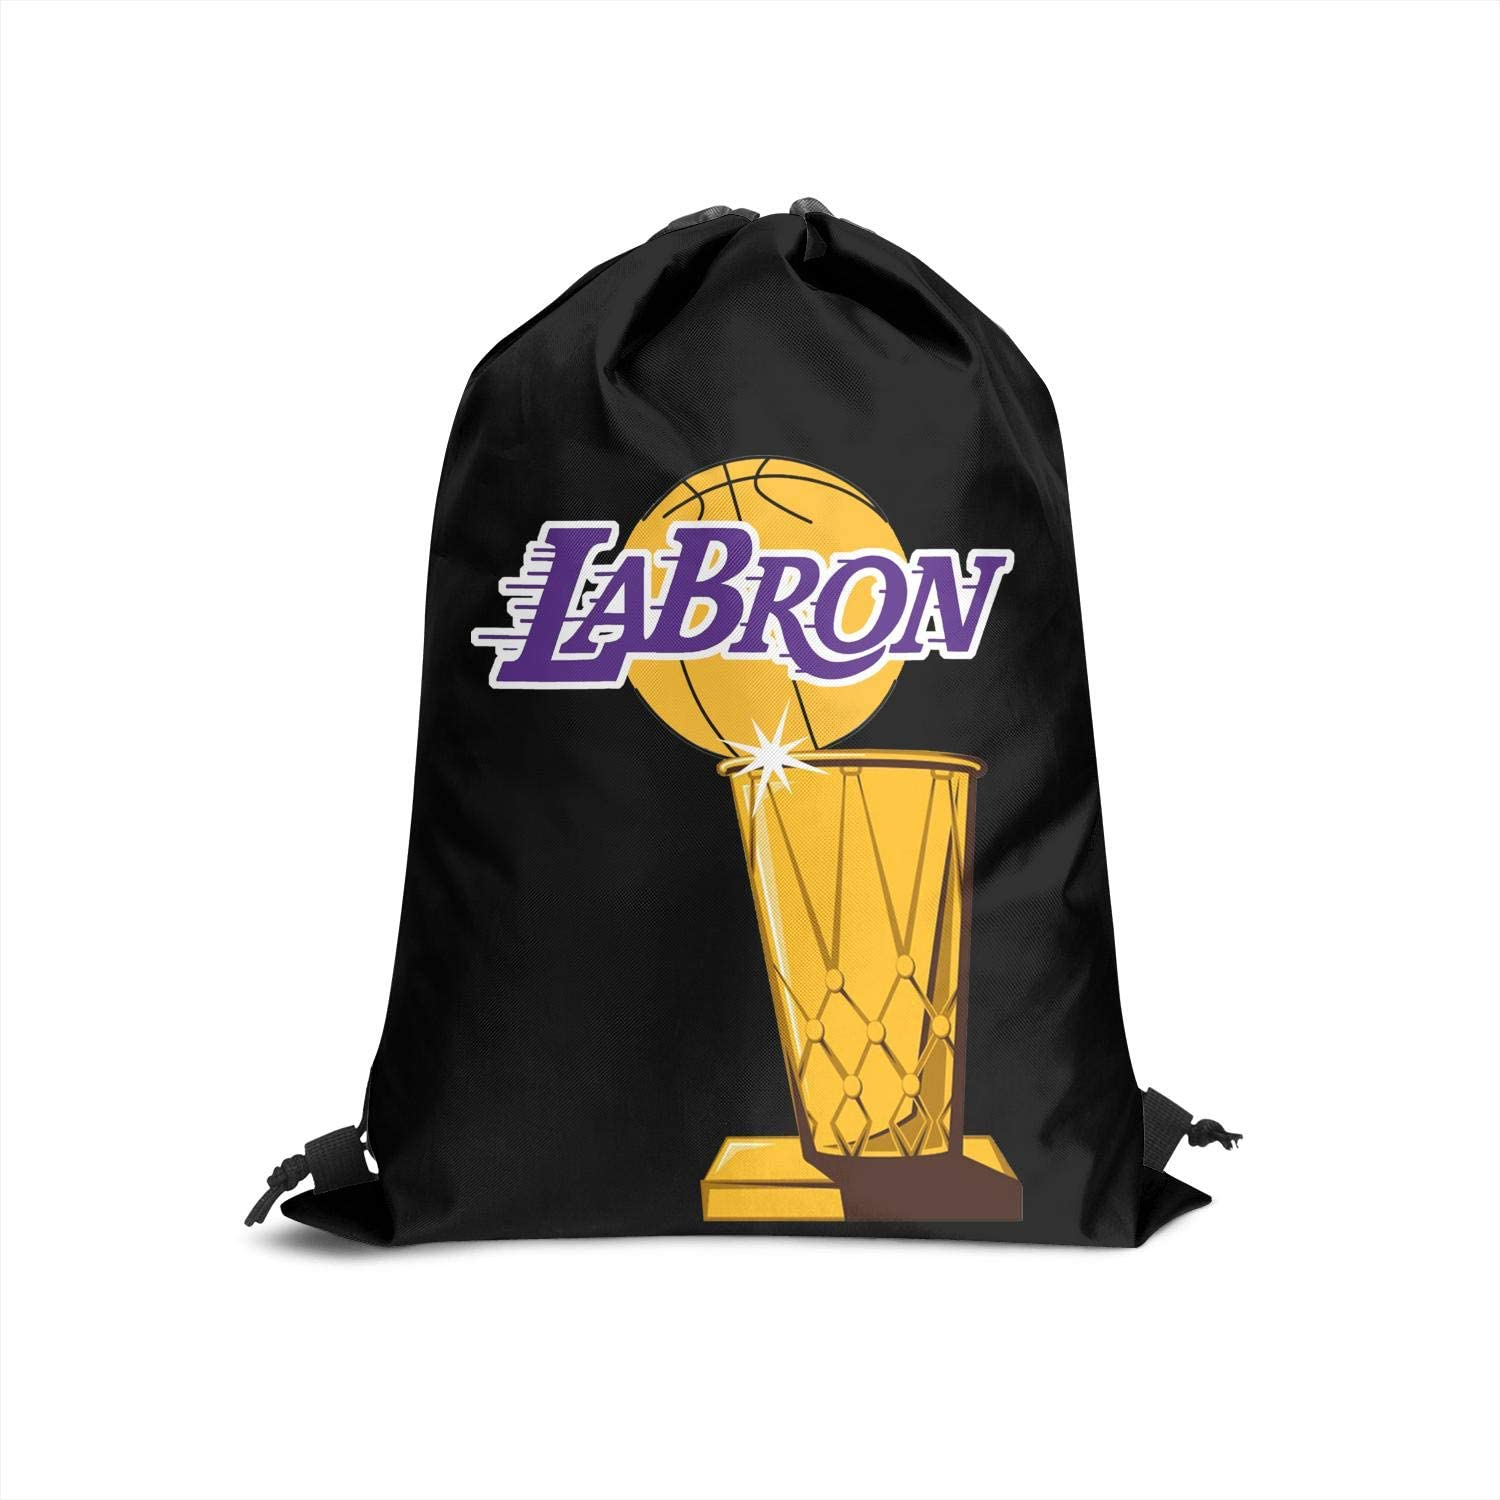 Drawstring Bags for Women /& Men GUYI3 Bags Athletic Casual Gold-23-Labron